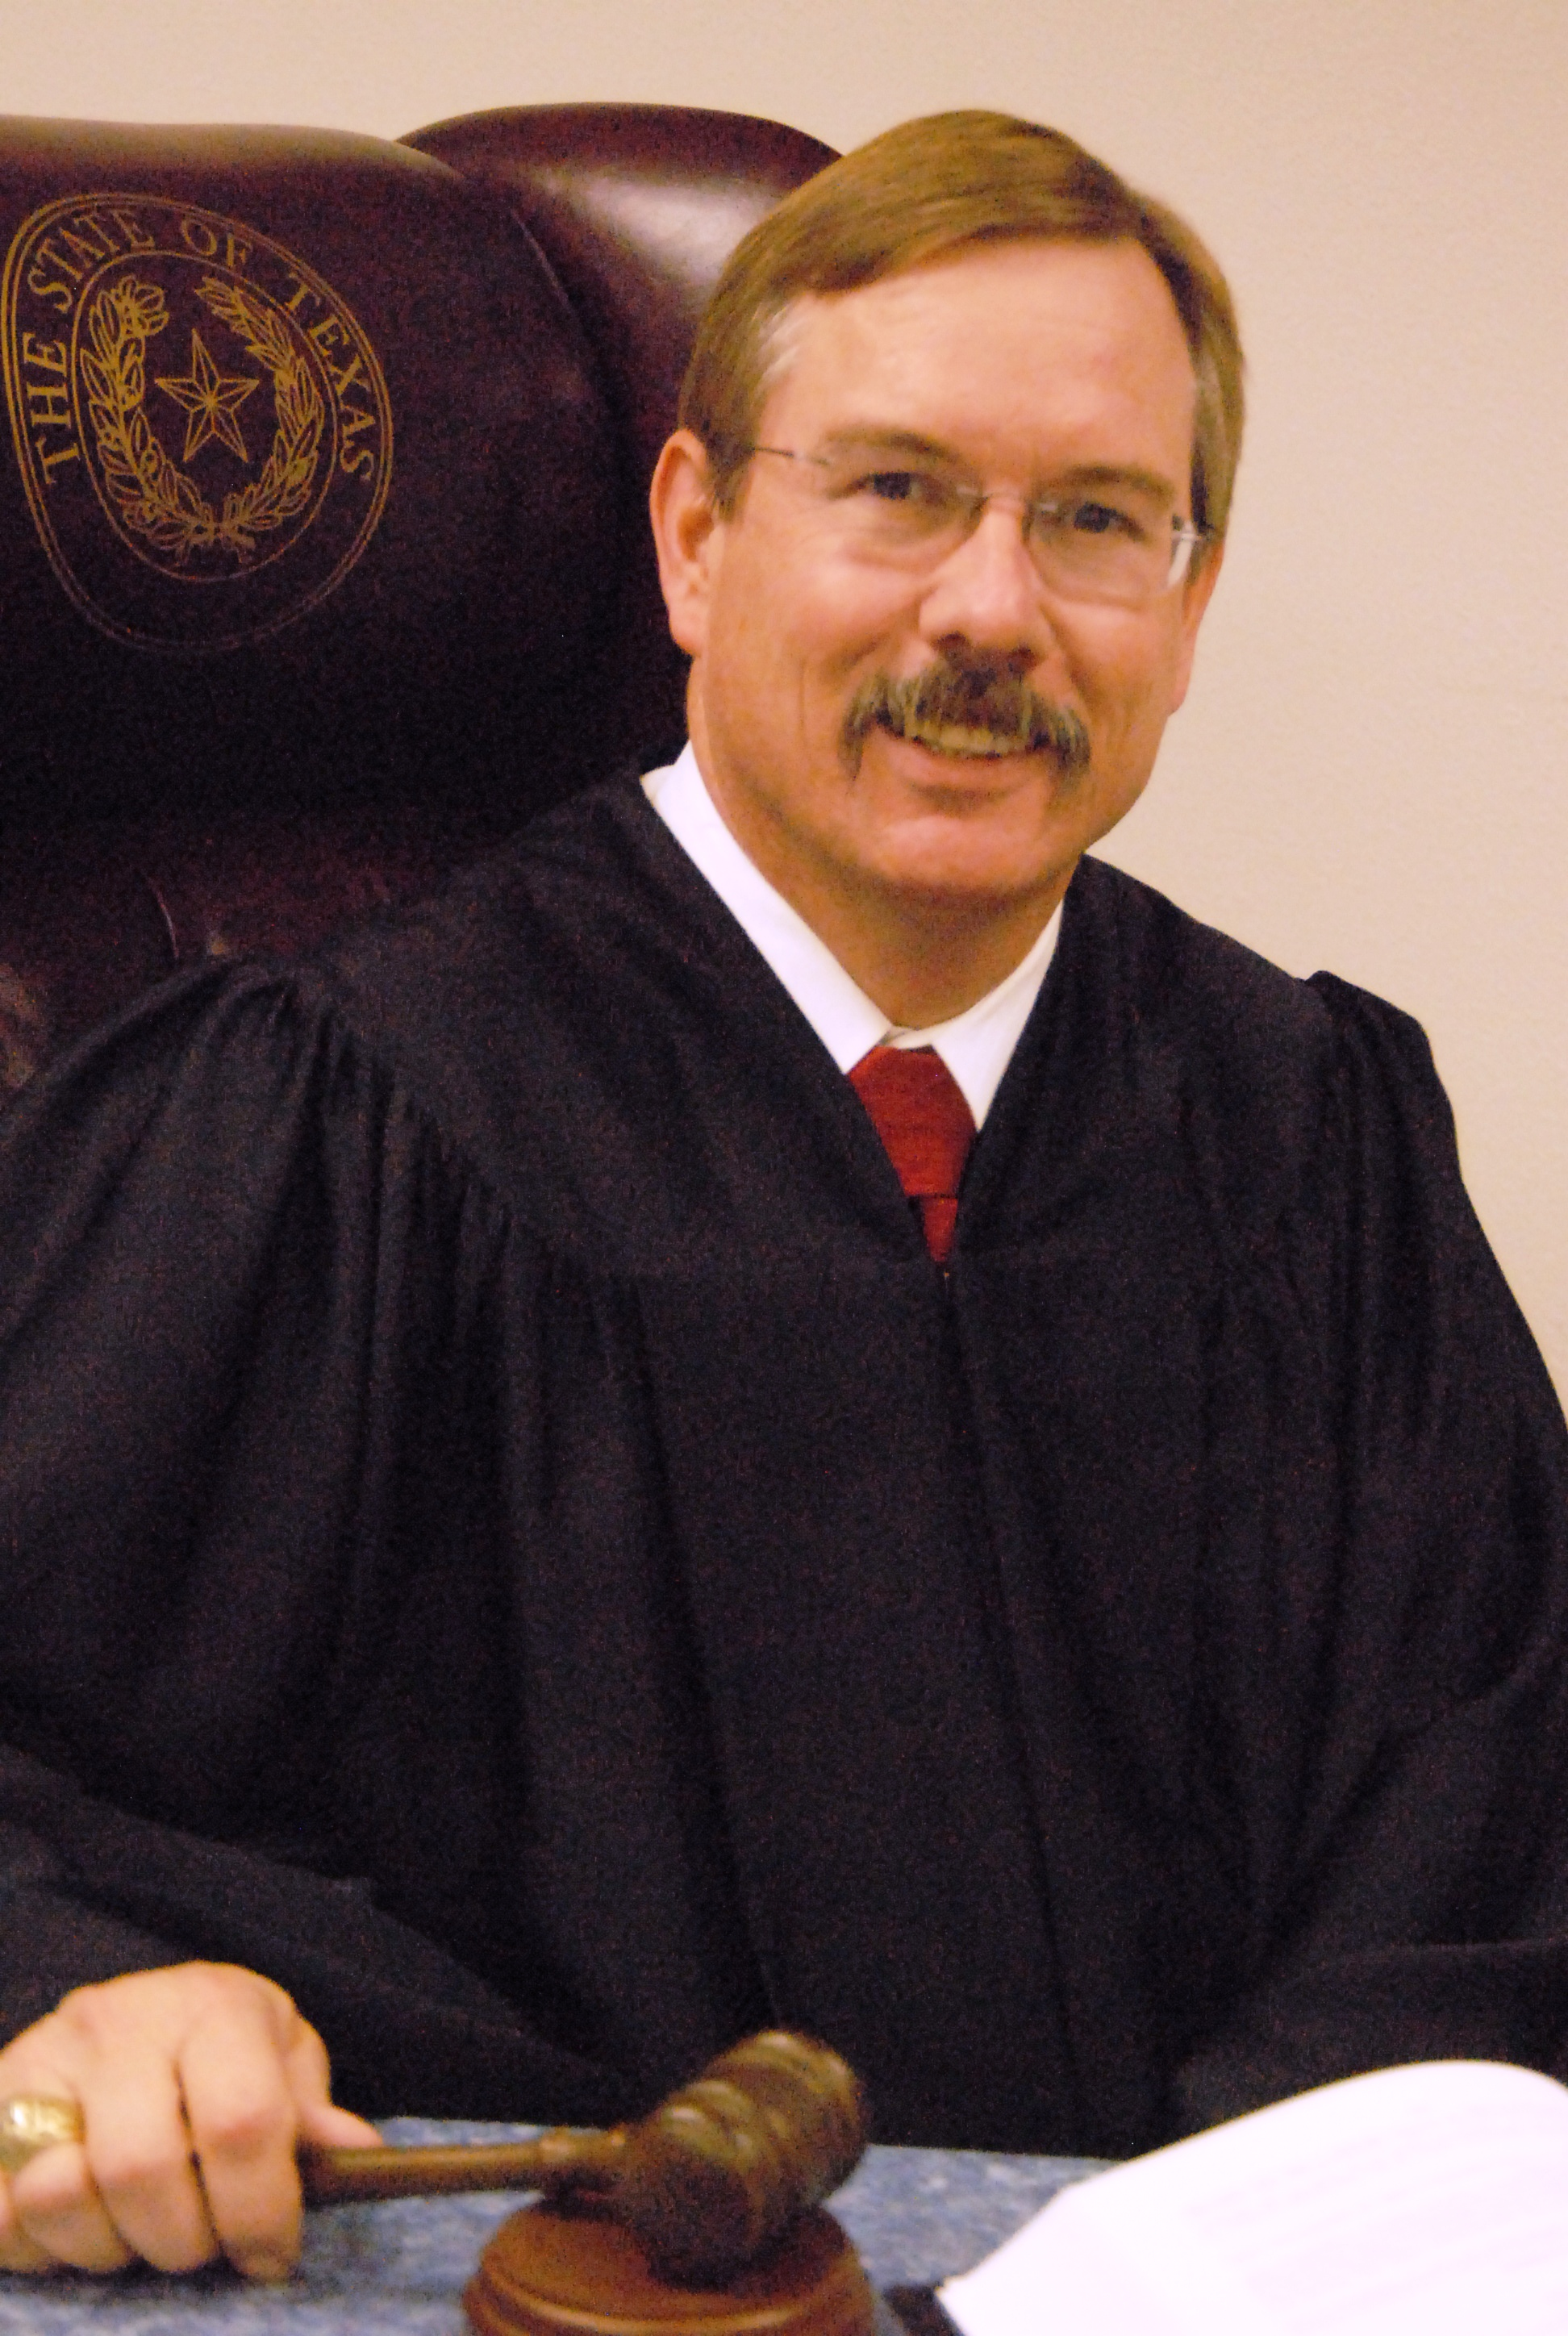 Judge Kelly Green